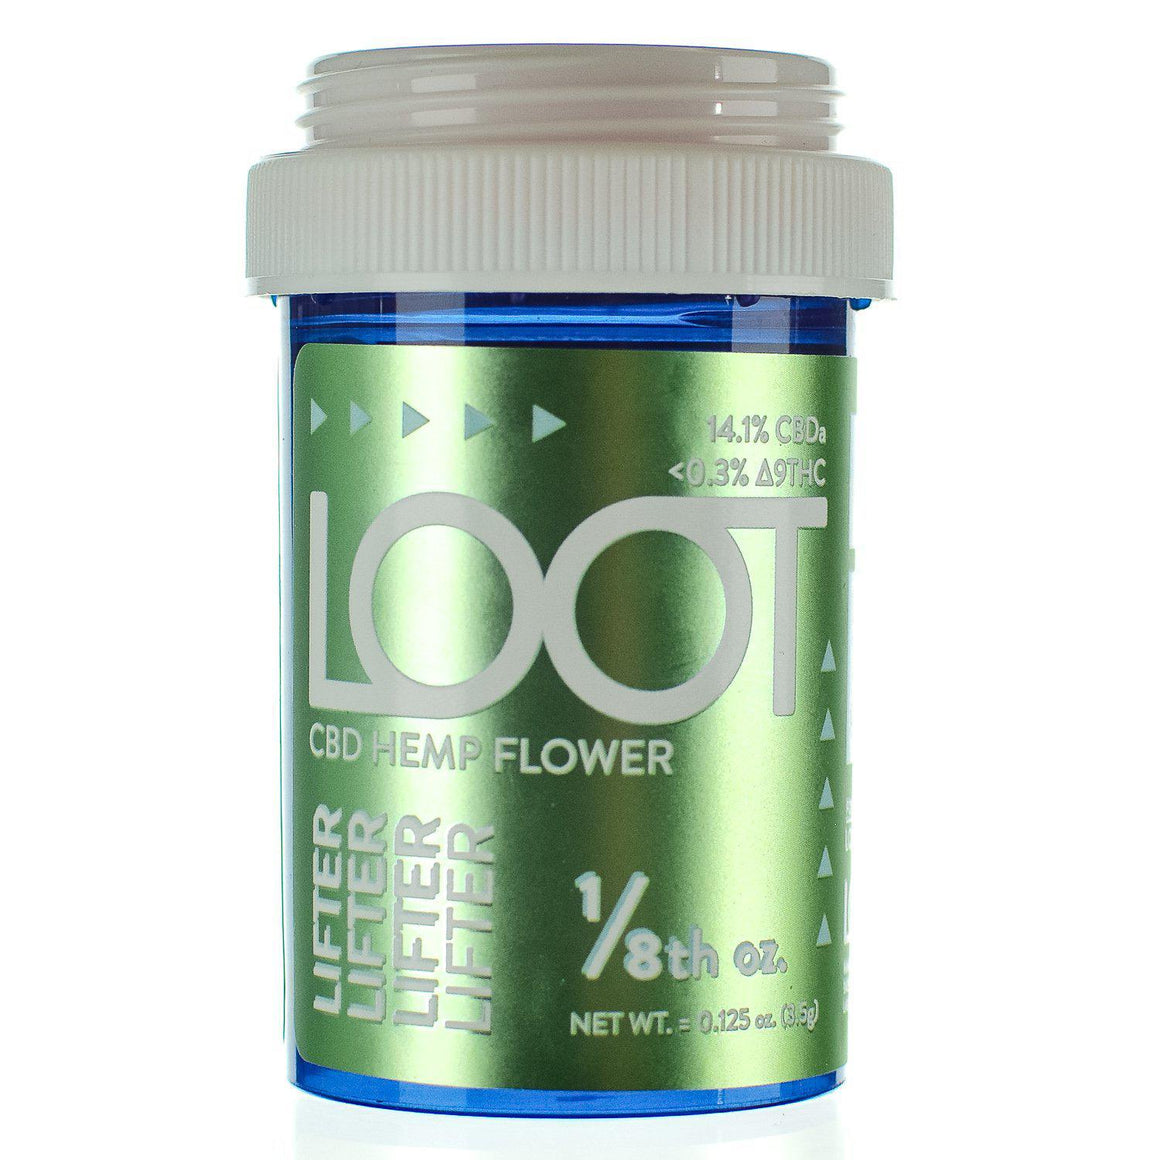 Loot CBD Hemp Flower Lifter | Andhemp.com